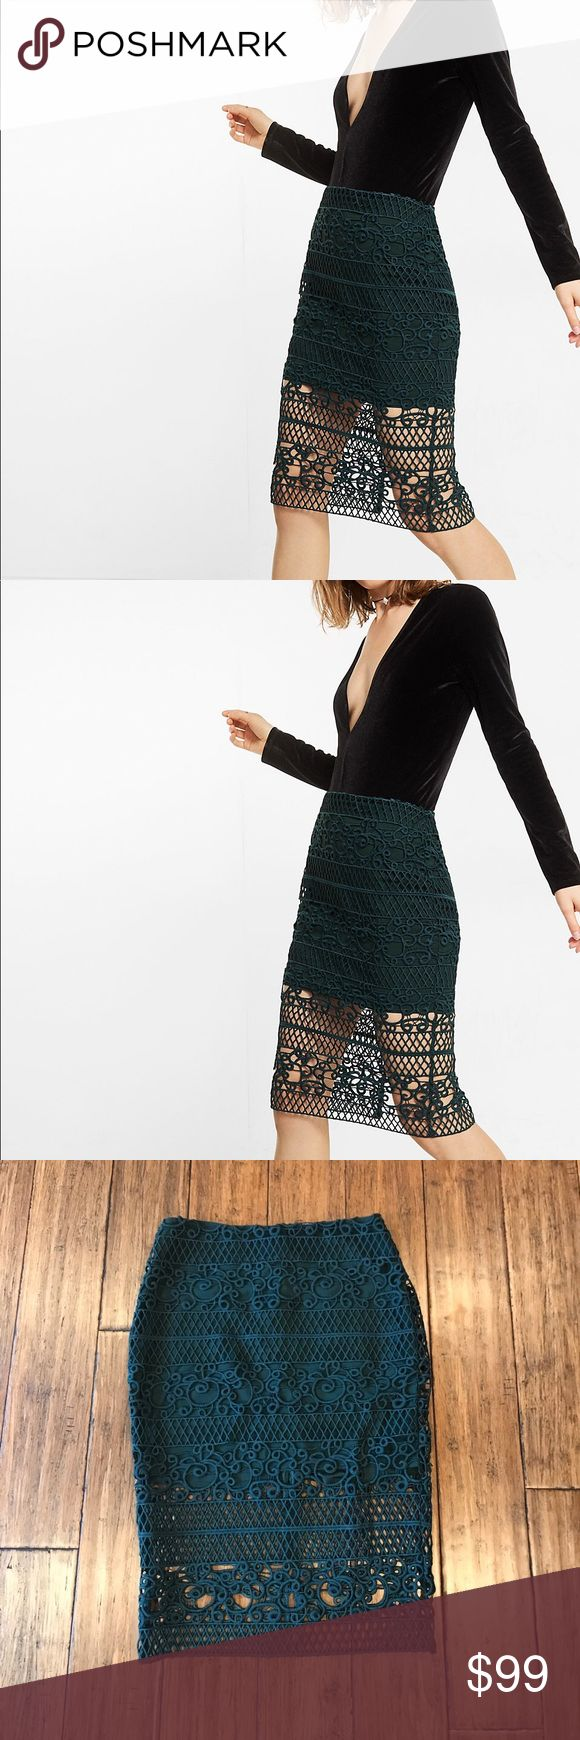 """Crocheted Pencil Skirt -Size 6 SOLD OUT ONLINE! This trellis-like crocheted lace lays over a shorter lining for an ultra-feminine take on the high waisted pencil skirt. Its slimming shape pairs beautifully with a long-sleeve body suit. Approx. 25.5"""" long, 14"""" across waist, and 18"""" across hips. Shell 100% polyester, lining 96% polyester, 4% spandex. Back slit approx. 8"""" deep.  * Pencil skirt * Hidden back zipper * Soft, thick crocheted lace; Lined to mini length * Straight hem with back slit…"""